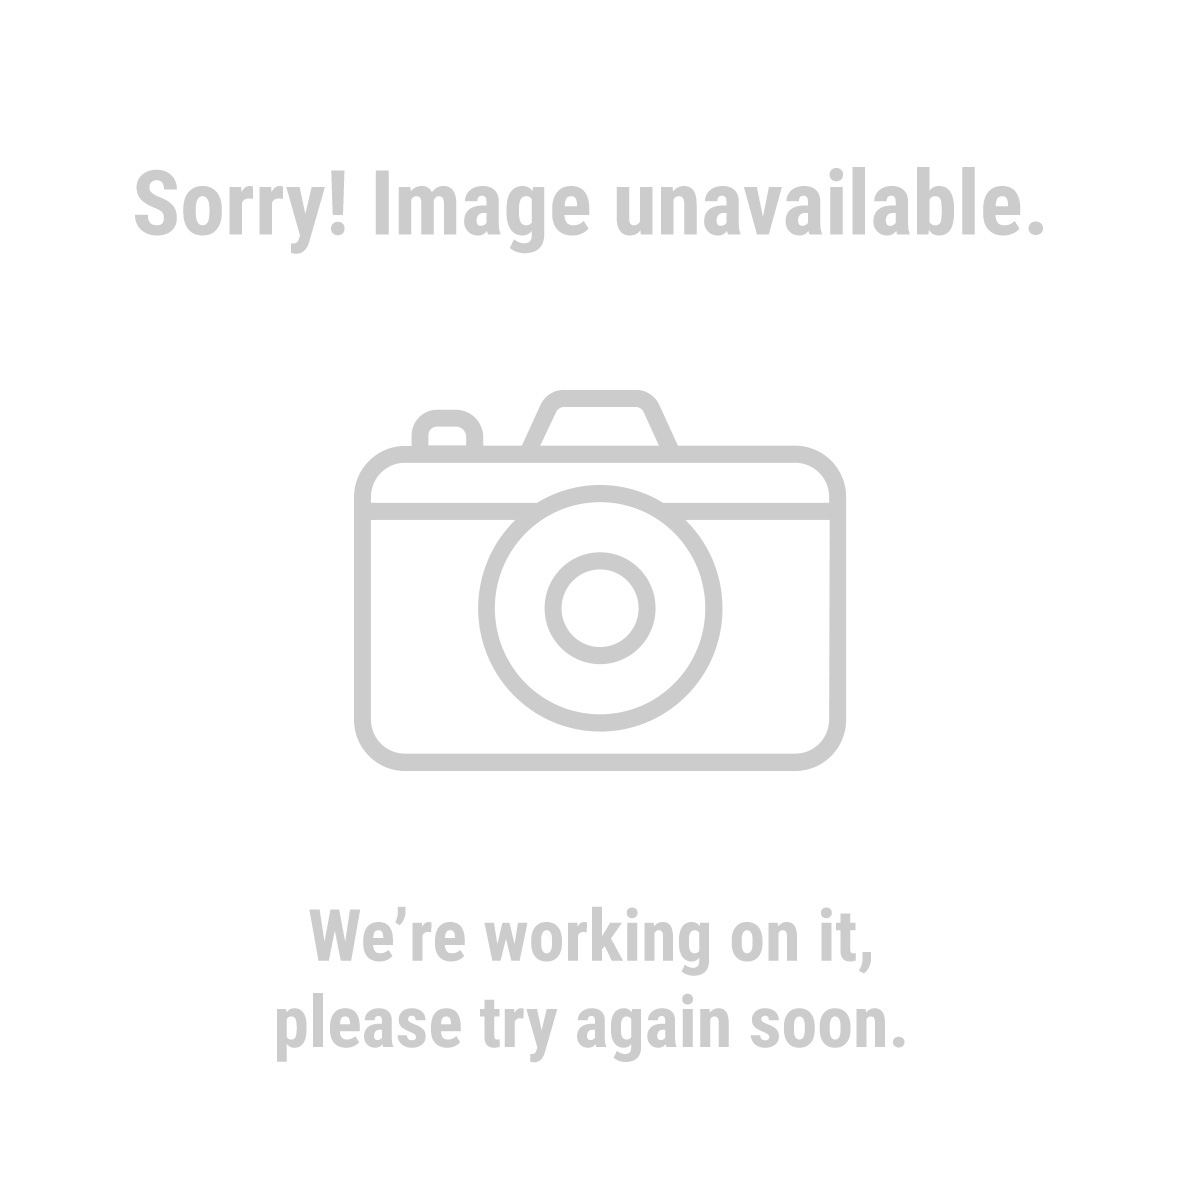 HFT 61374 Super Clear Packaging Tape